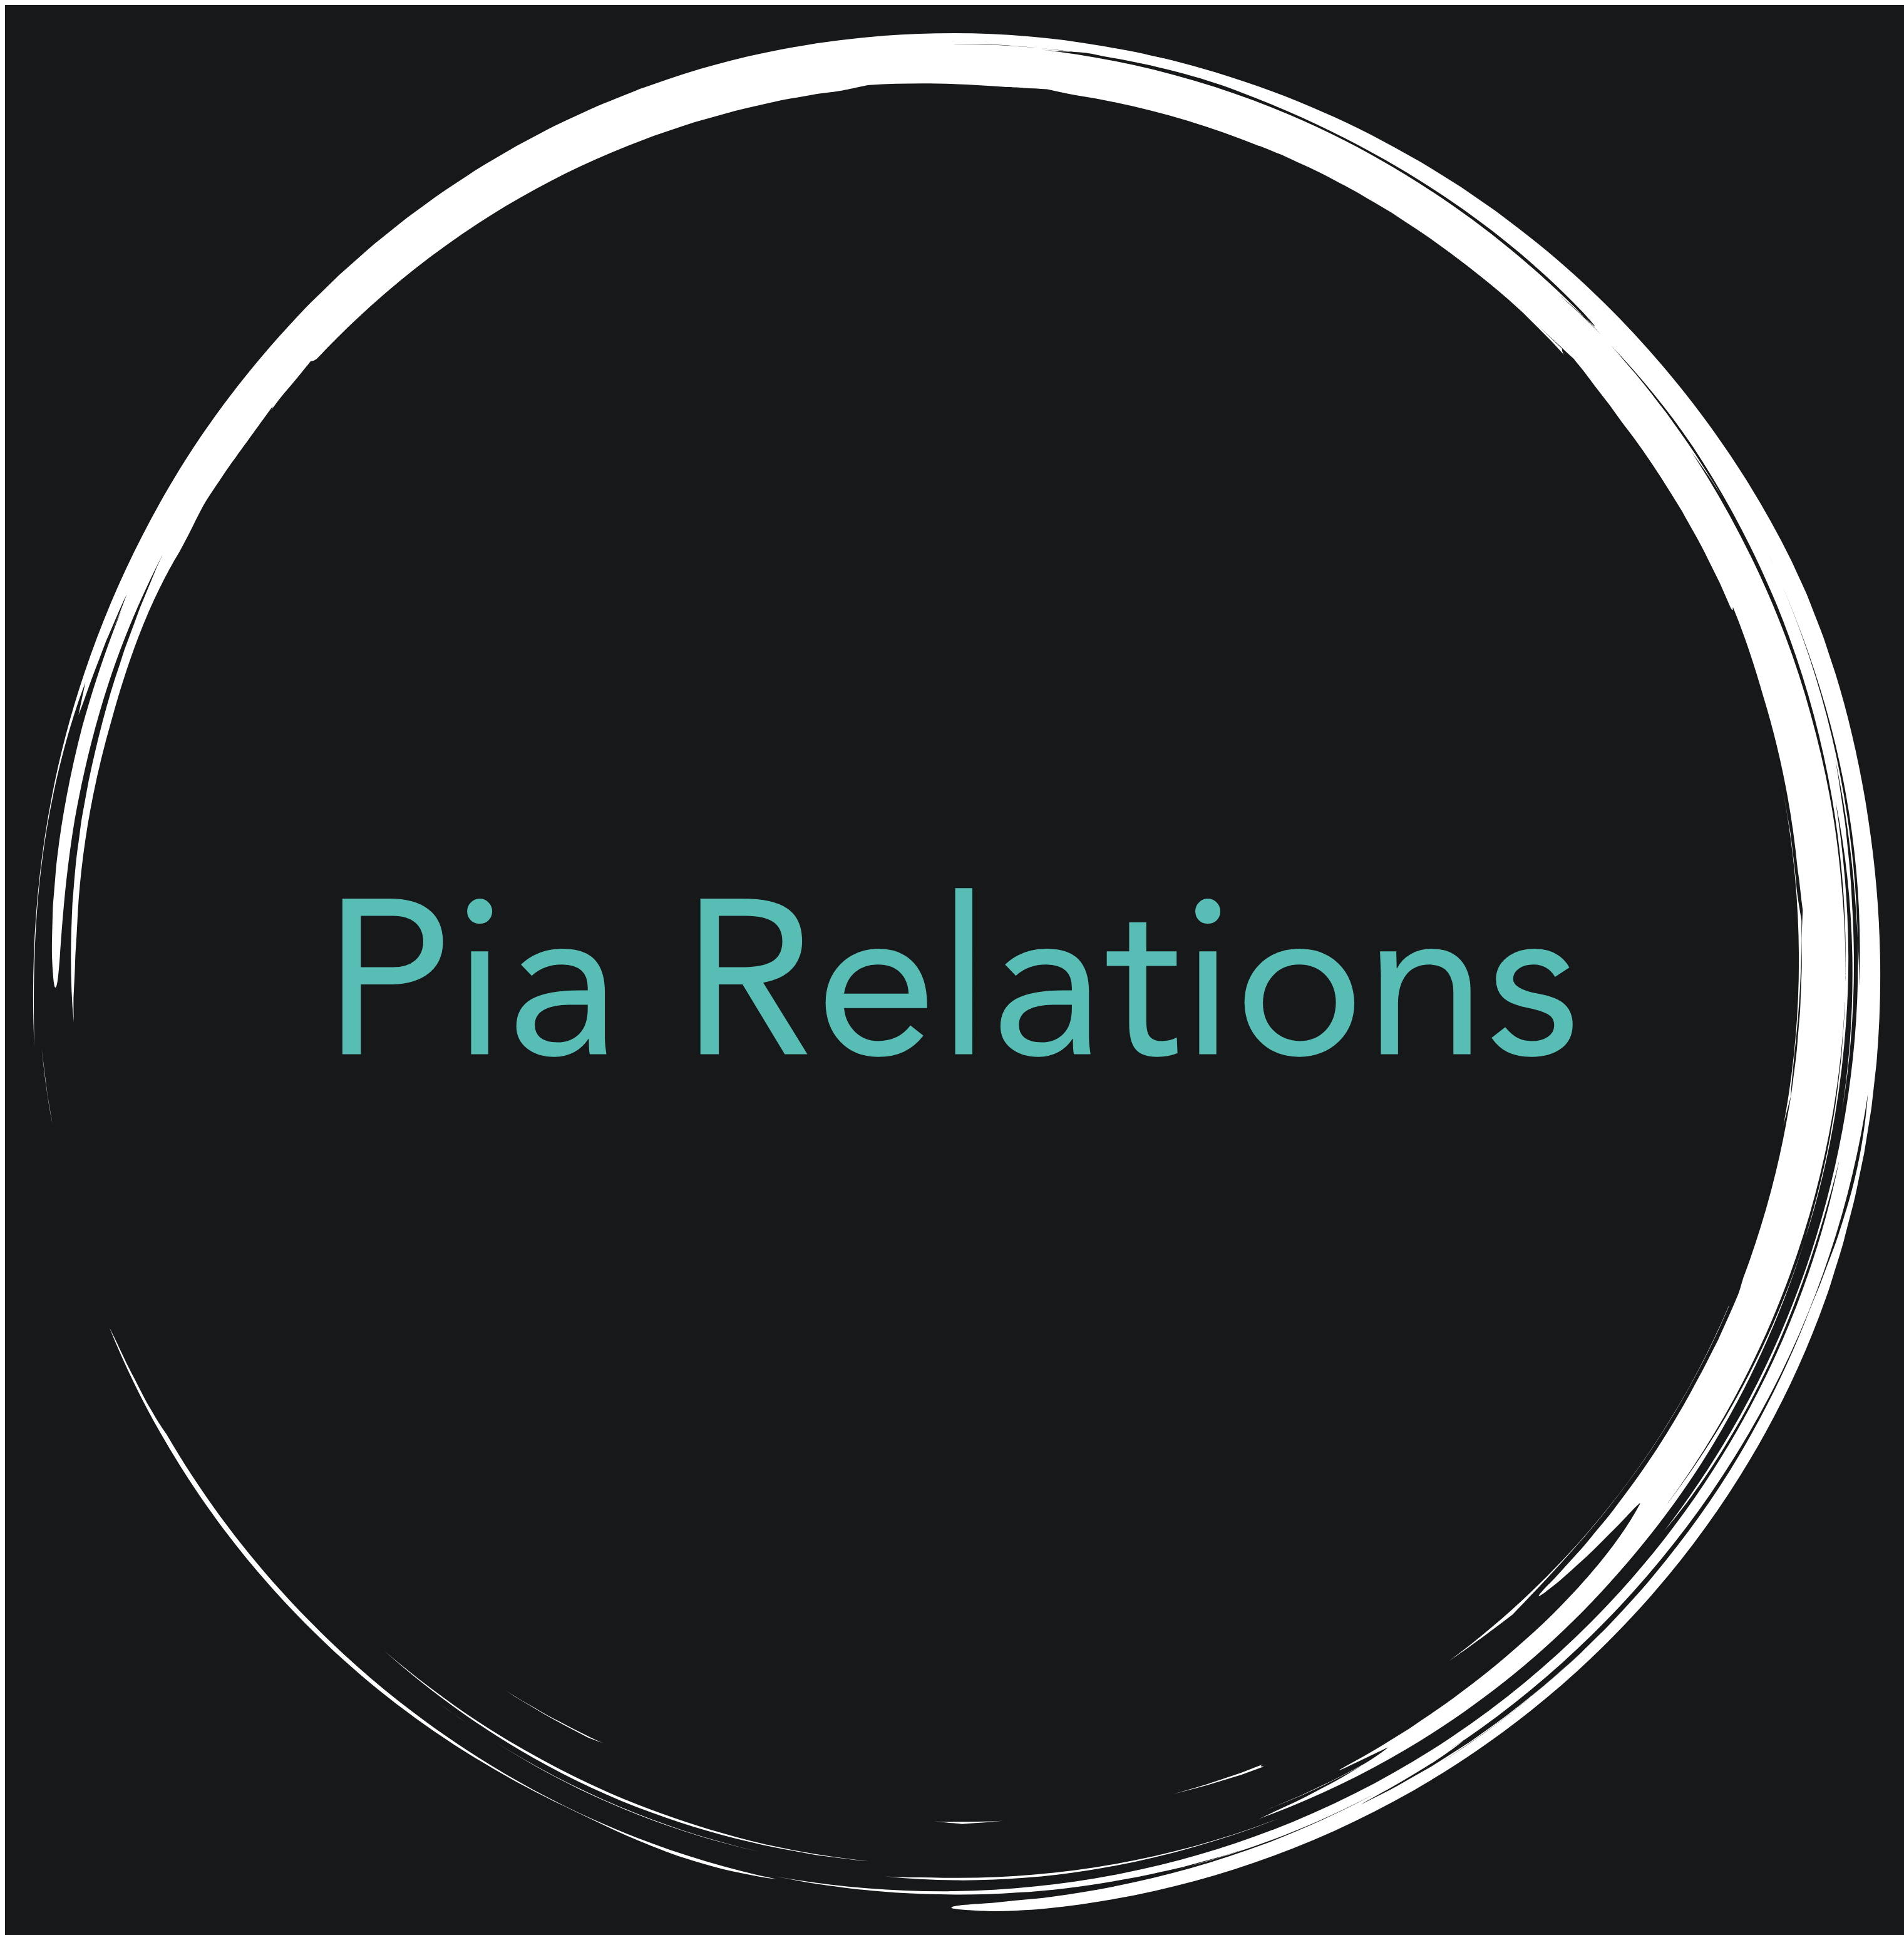 Pia Relations